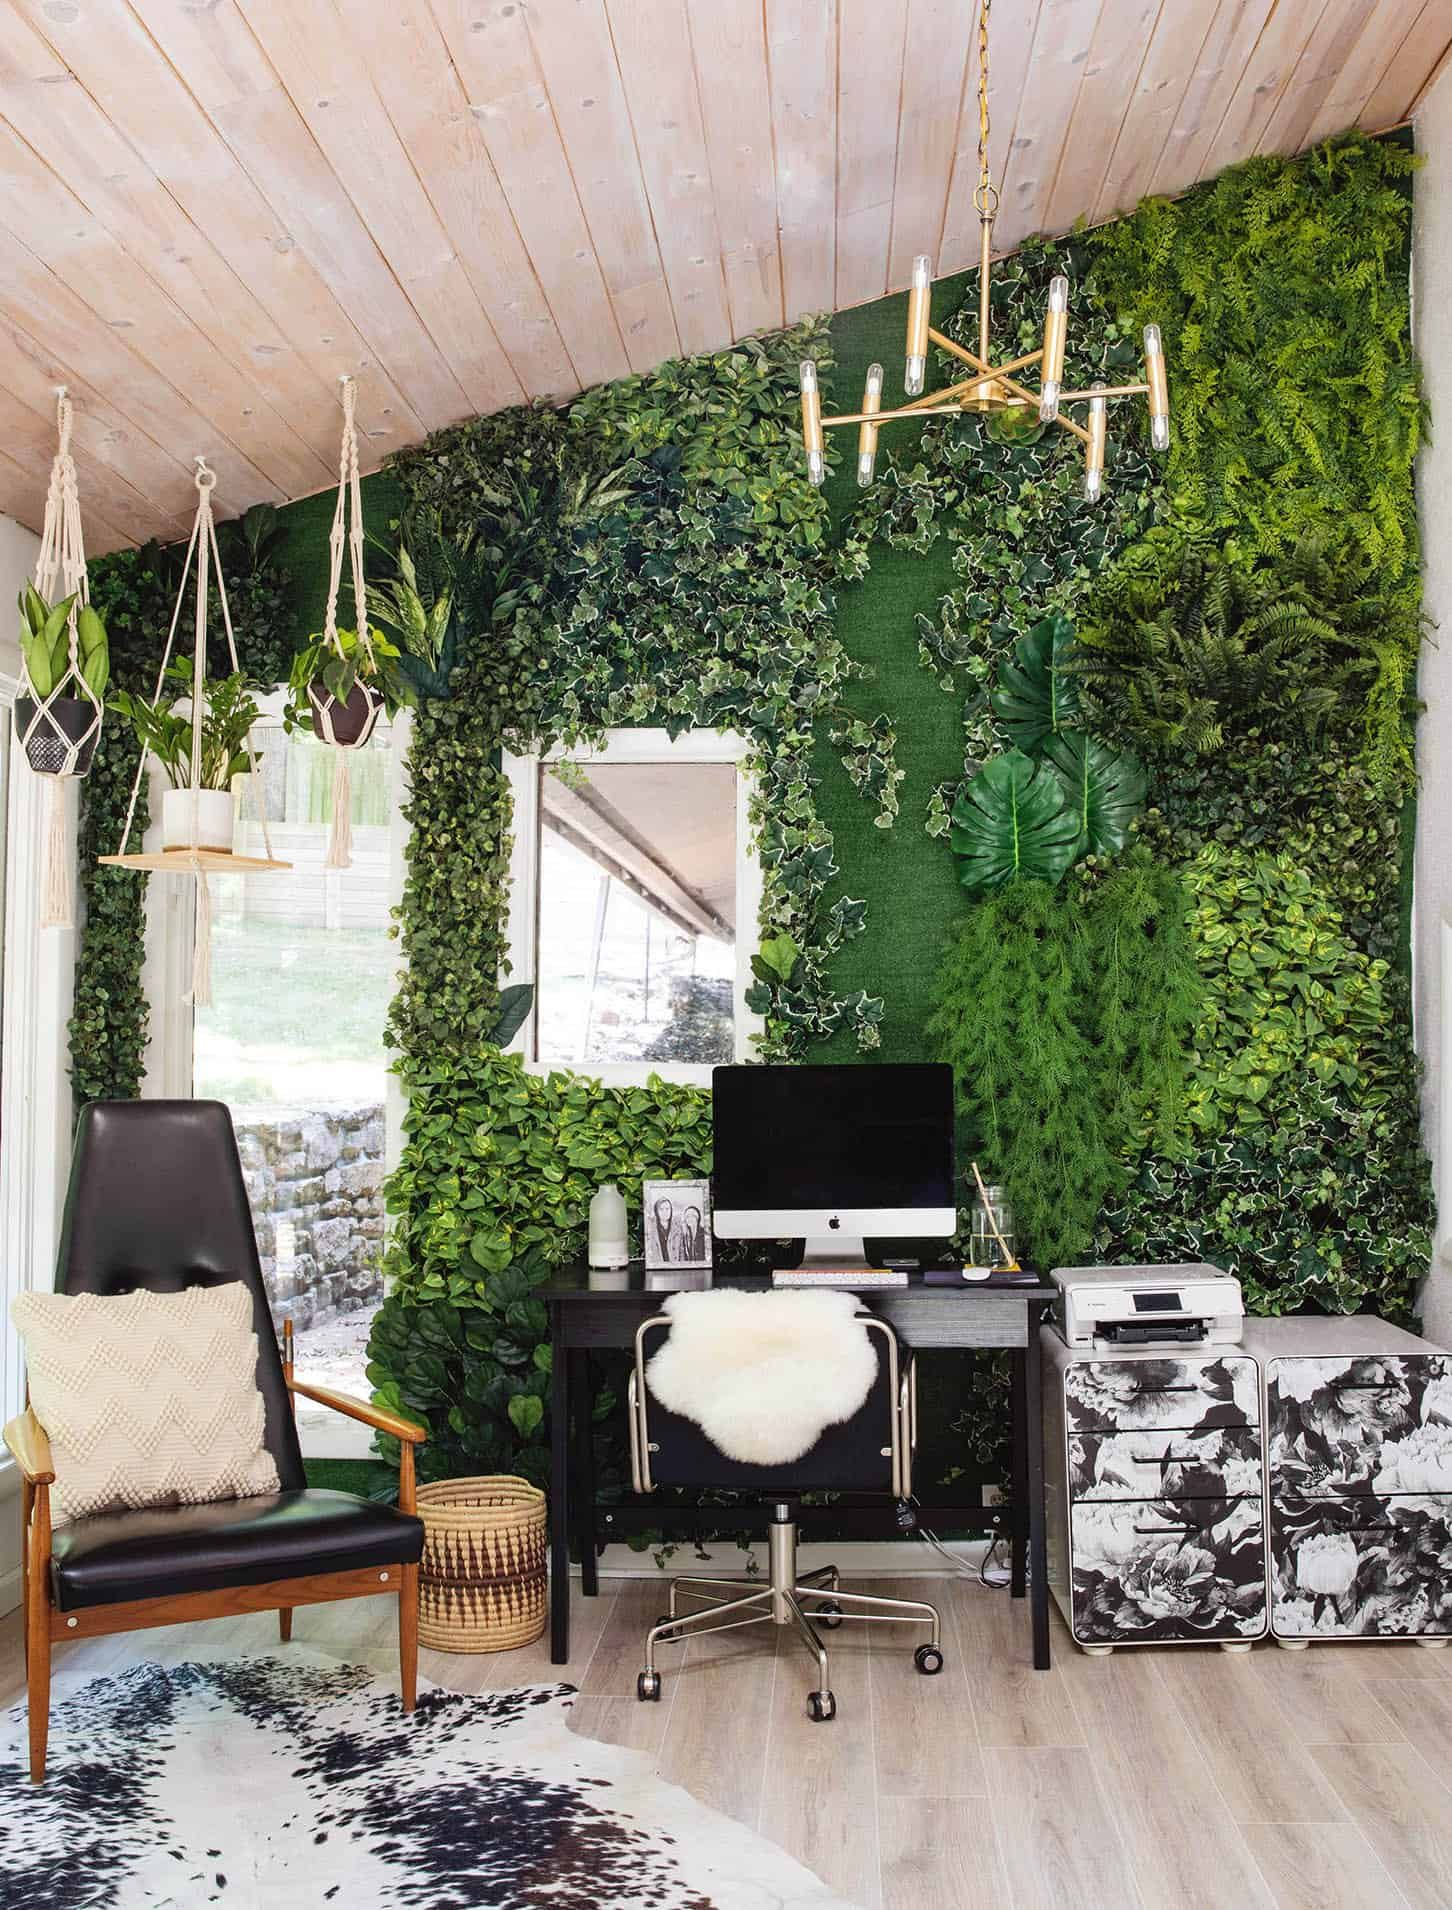 Full step by step tutorial for creating a faux living wall from abeautifulness com